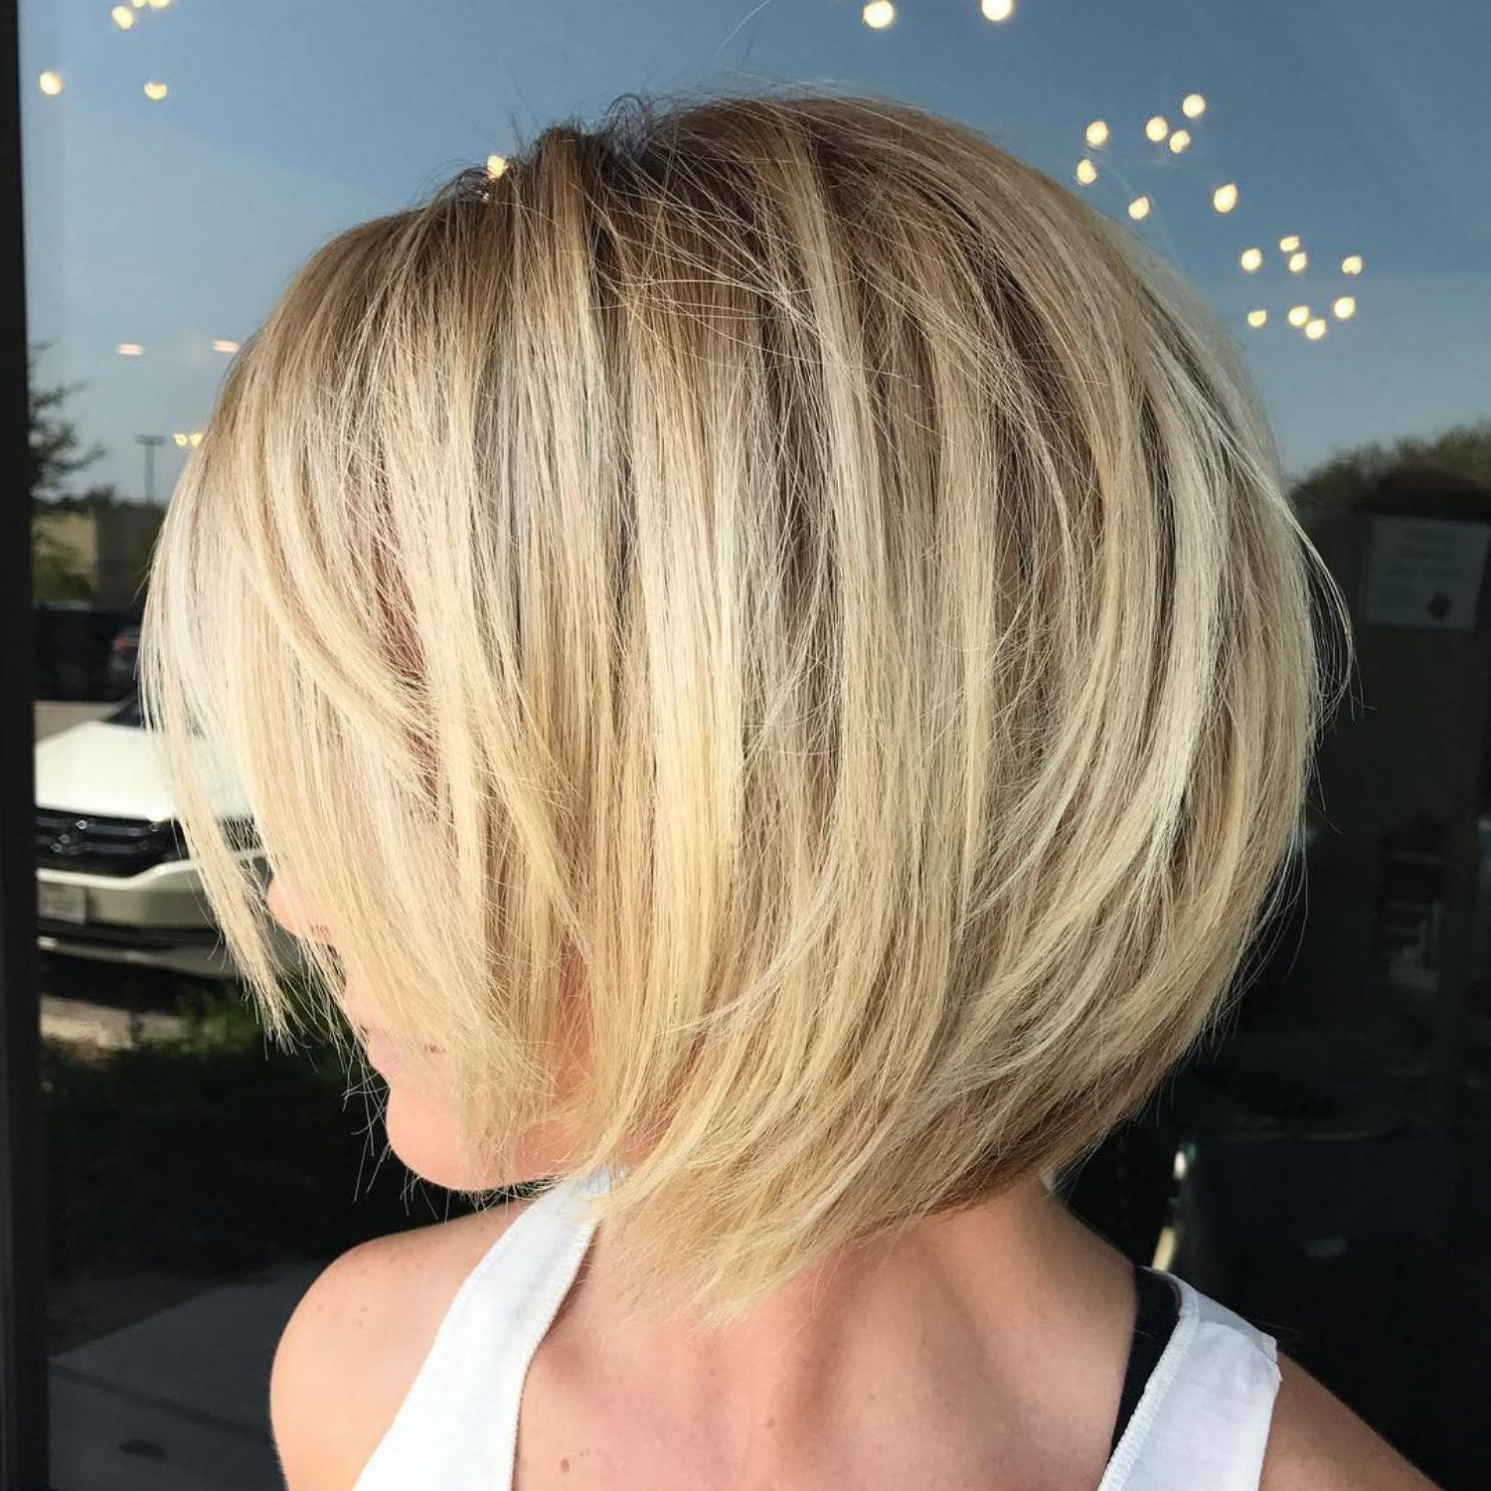 60 Best Short Bob Haircuts And Hairstyles For Women In 2018 For Short Bob Hairstyles With Feathered Layers (Gallery 2 of 20)